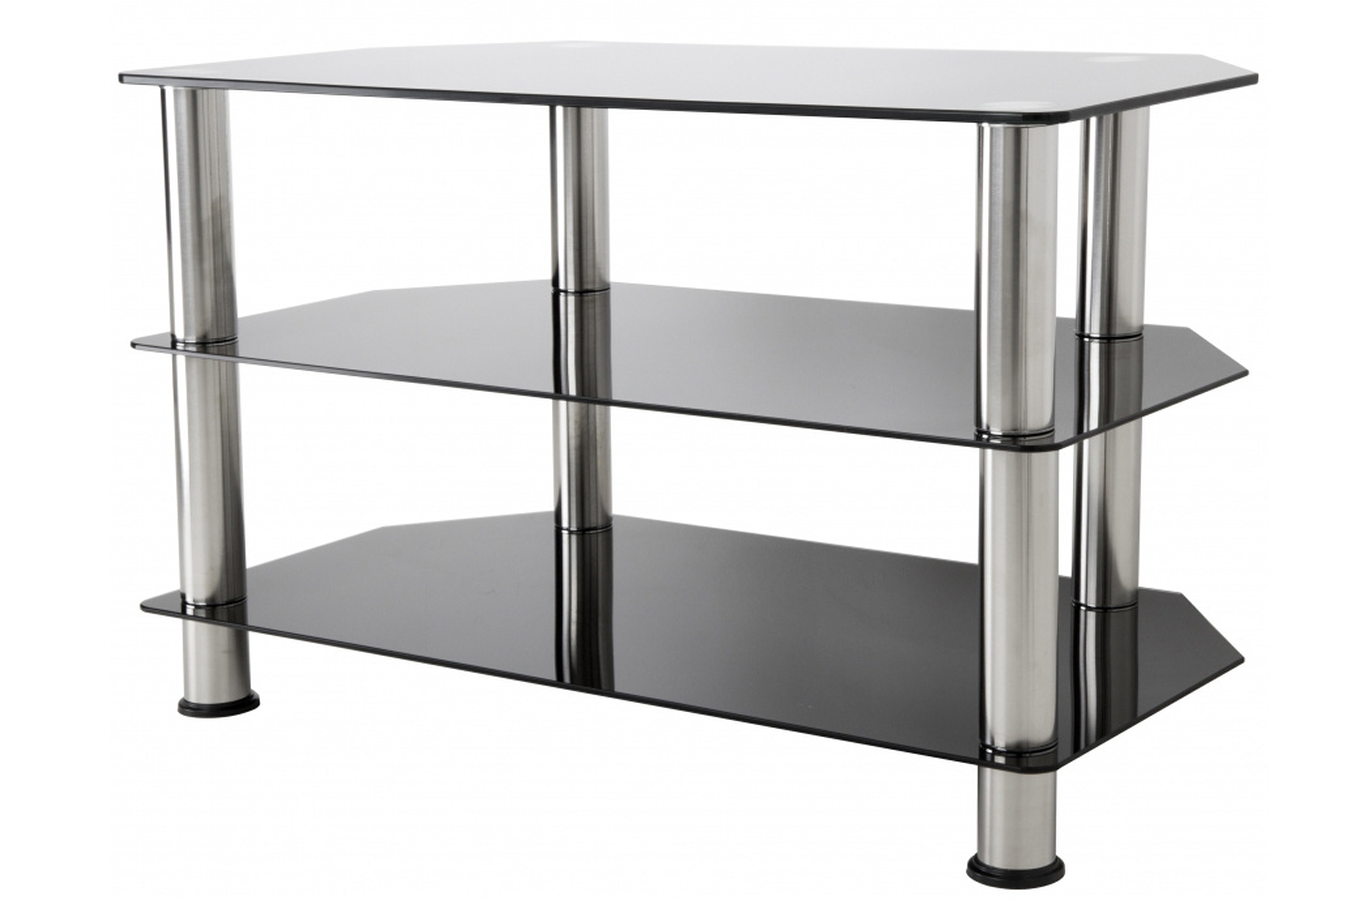 Image post meuble tv design verre image post meuble tv fly nimes image - Meuble Tv Sdc 800 37 Avf